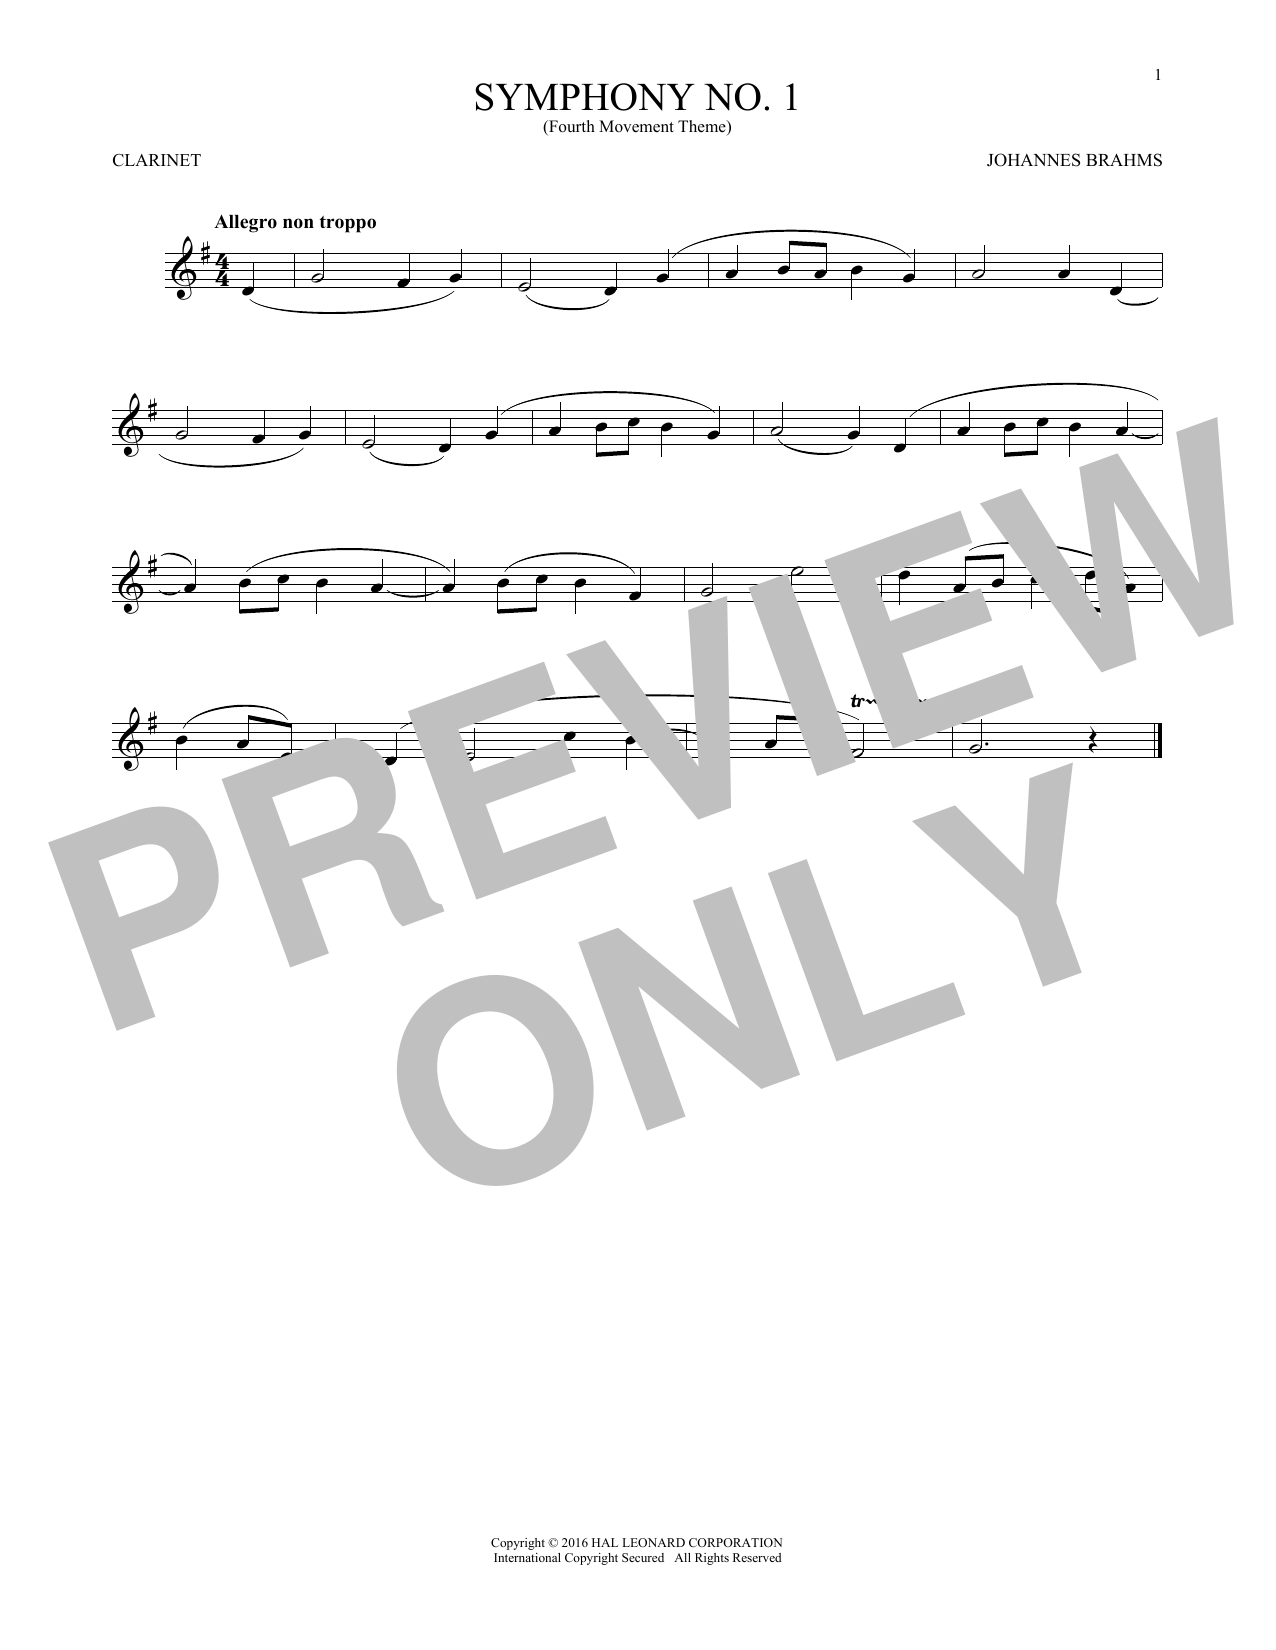 Symphony No. 1 In C Minor, Fourth Movement Excerpt (Clarinet Solo)